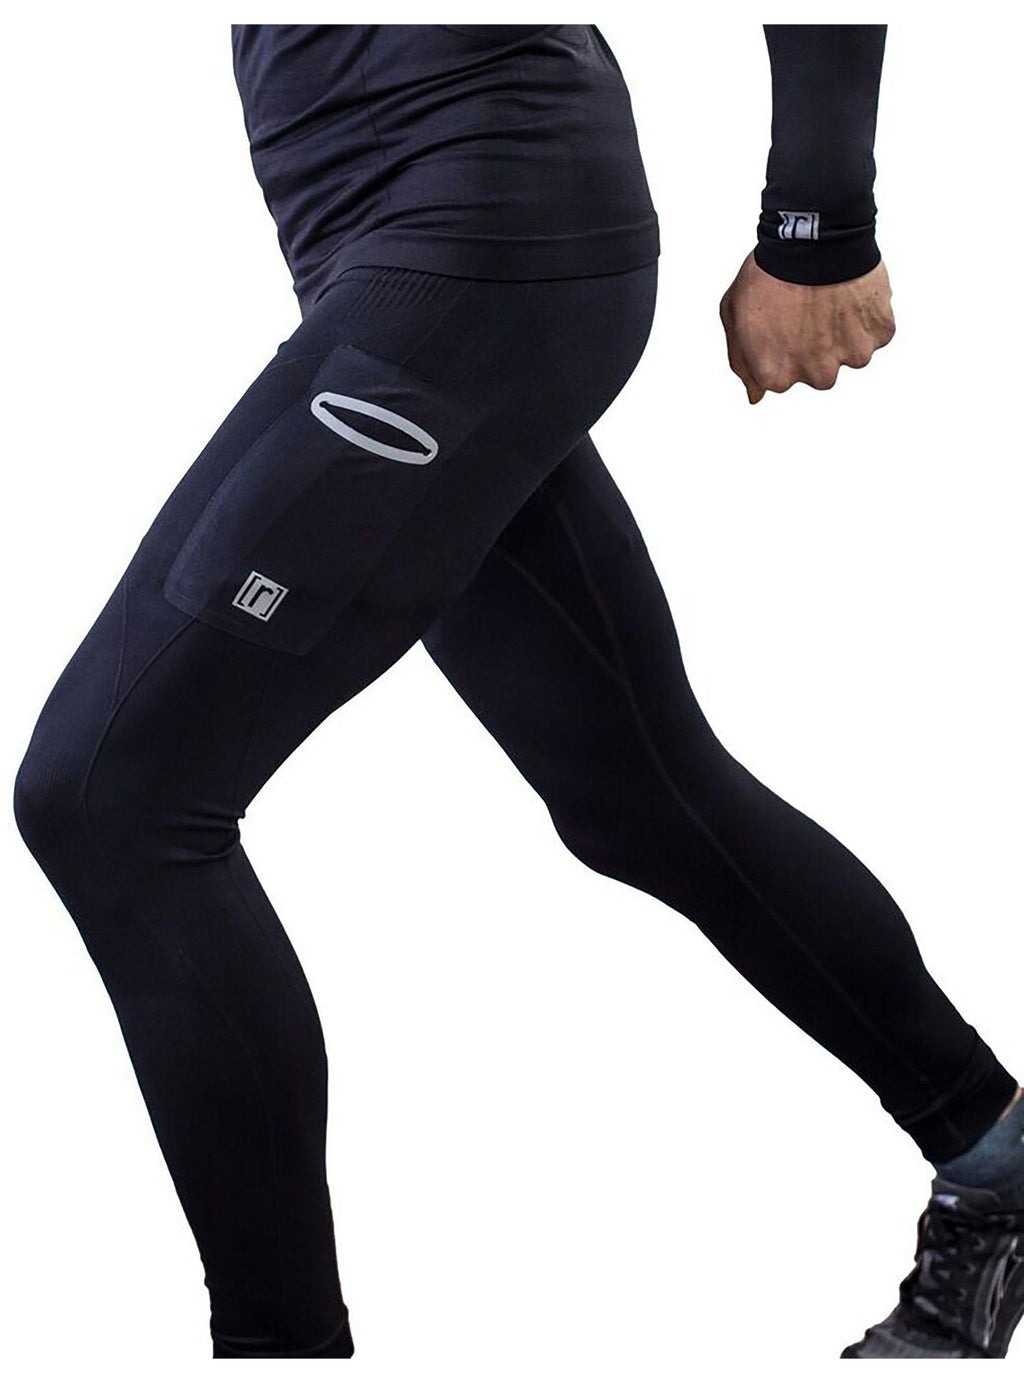 Black compression pant with patented fully seamless front and pocket. Side view.